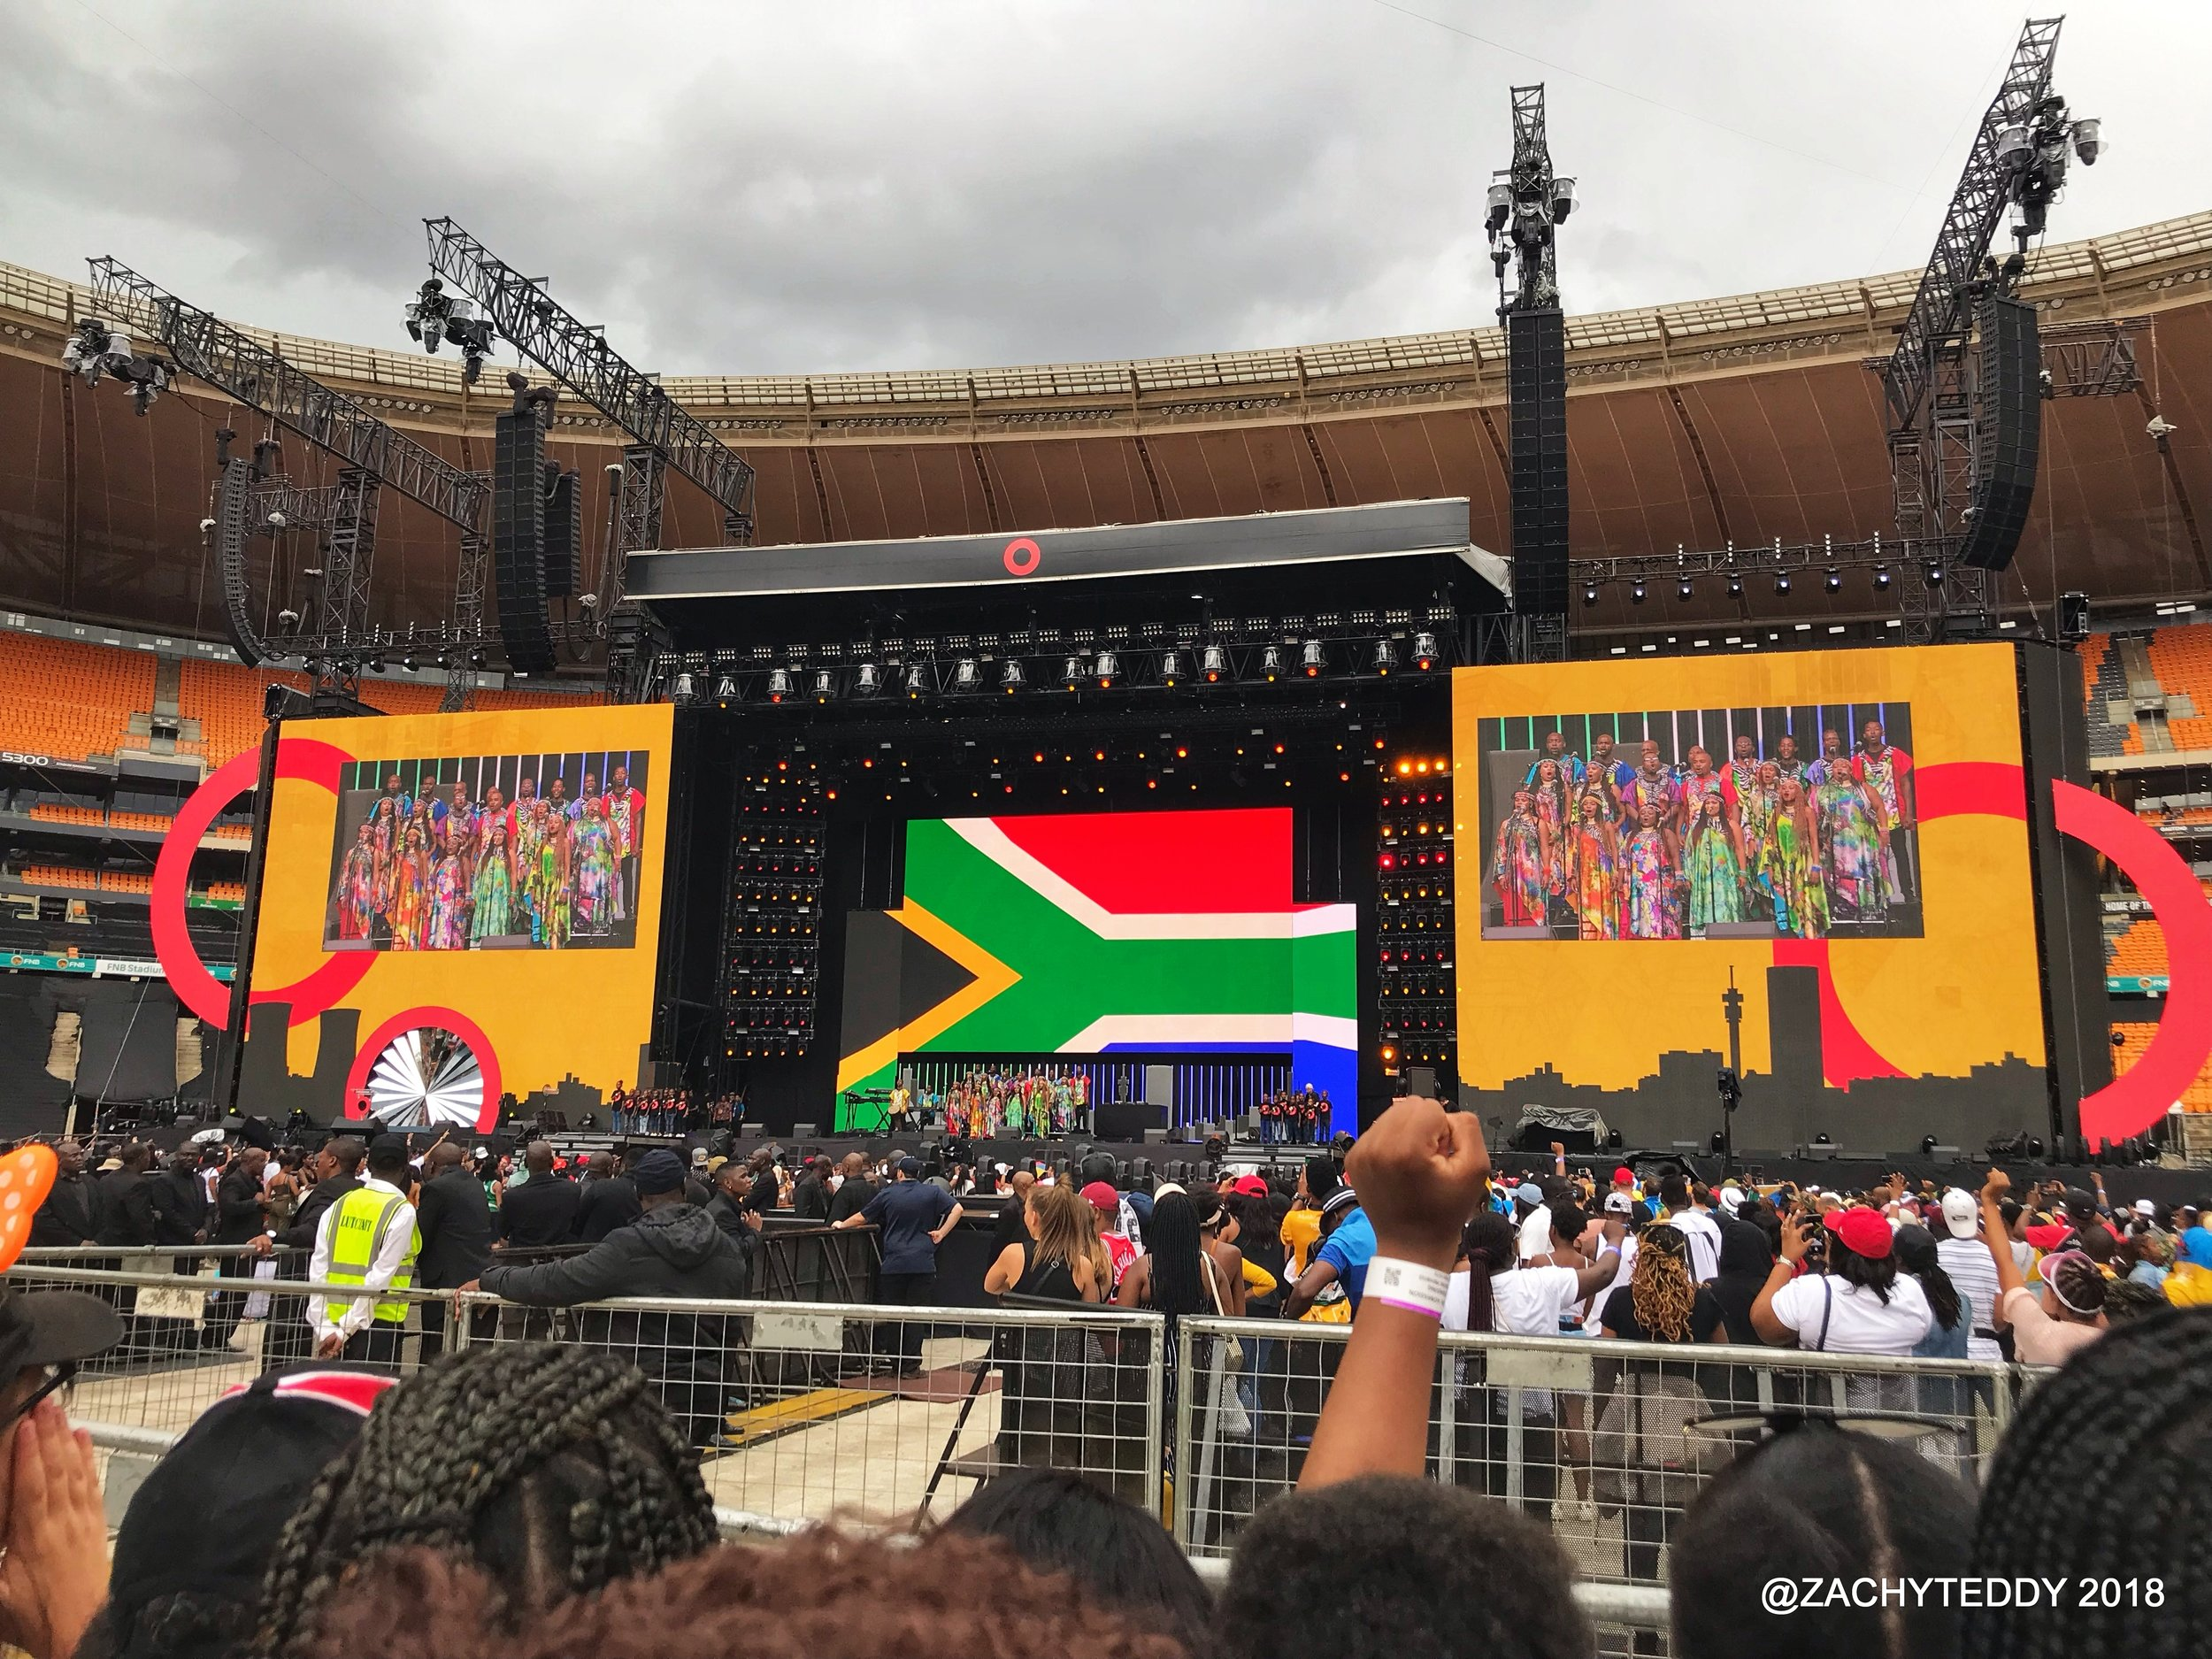 A view of the FNB stadium